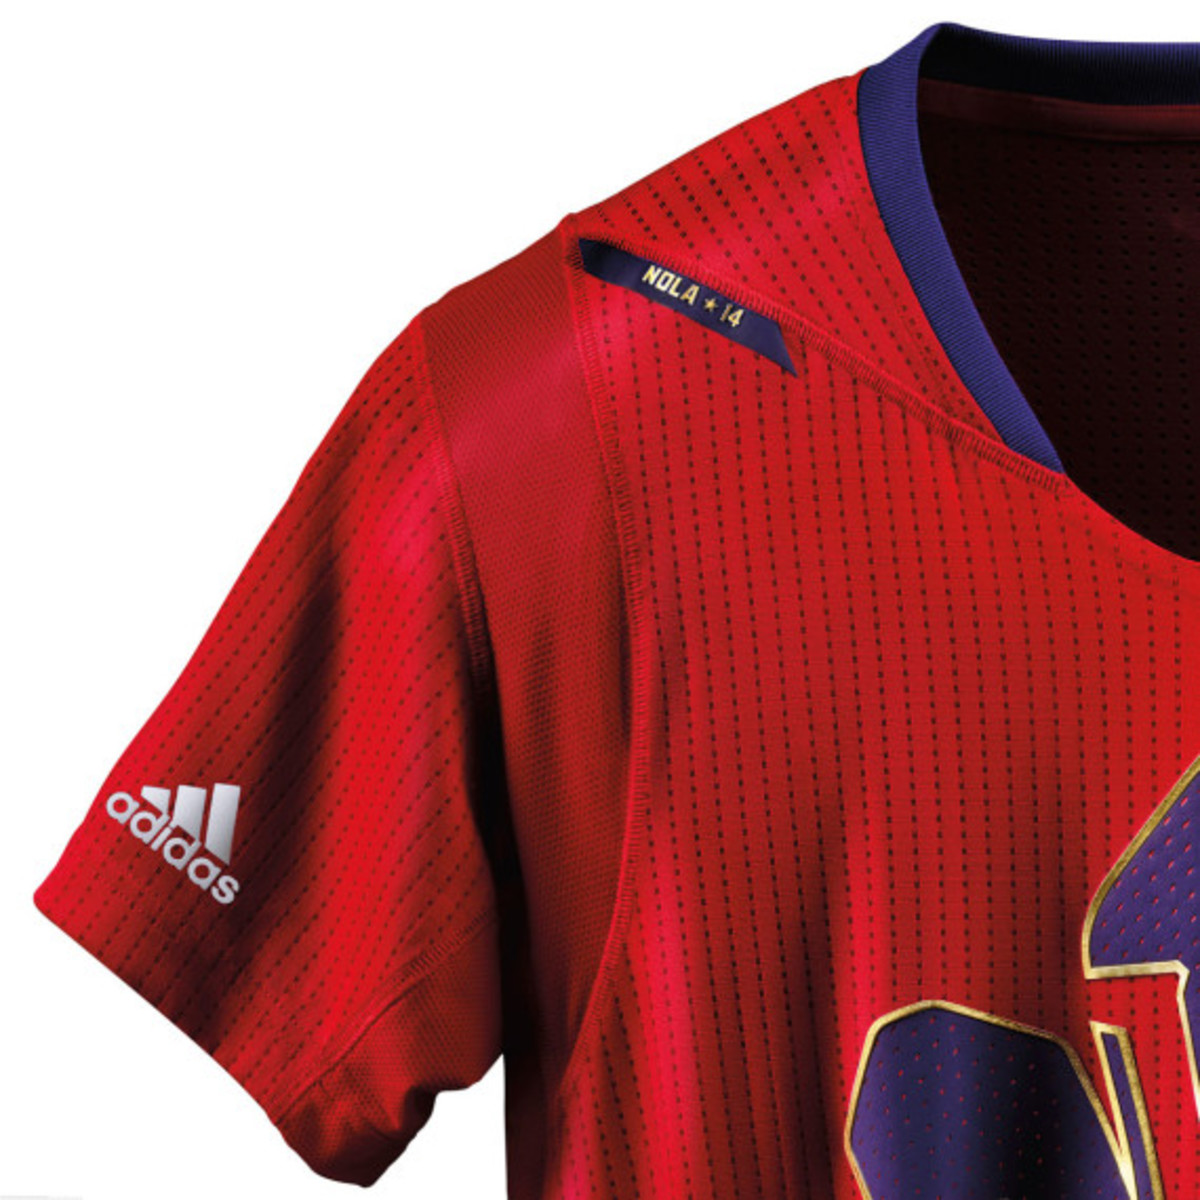 adidas-nba-2014-nba-all-star-game-uniforms-revealed-05